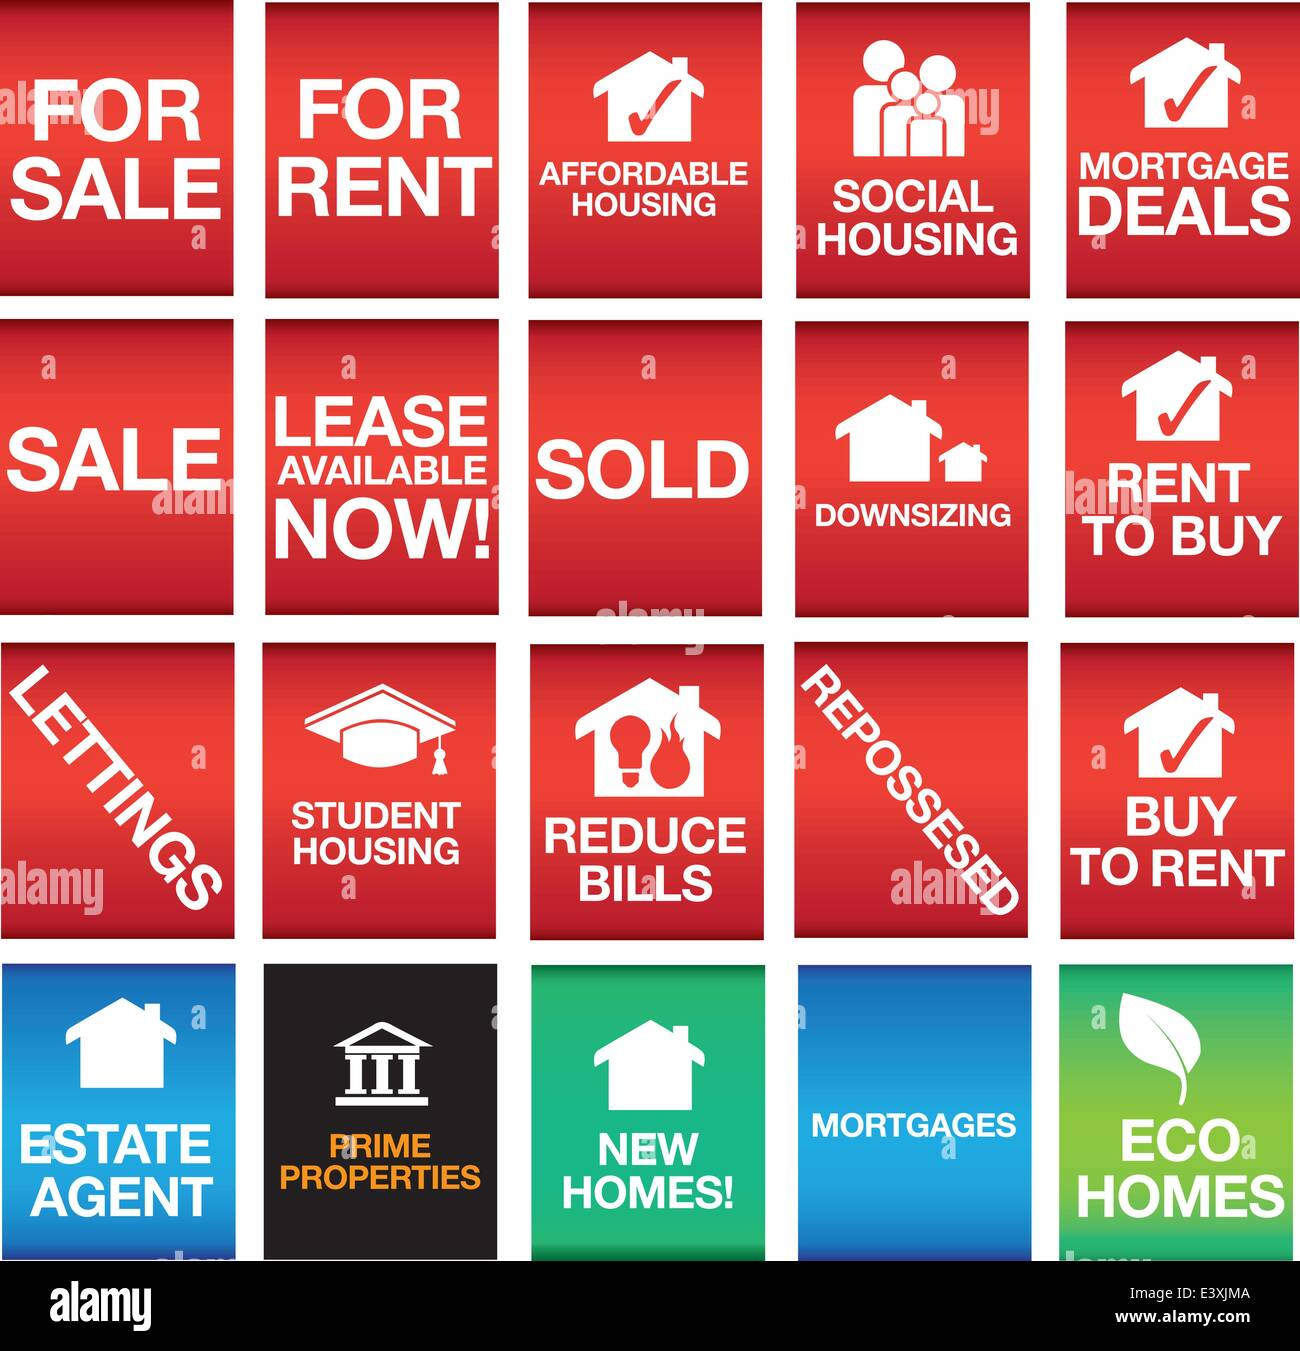 for sale, rent, lettings, housing - Stock Vector